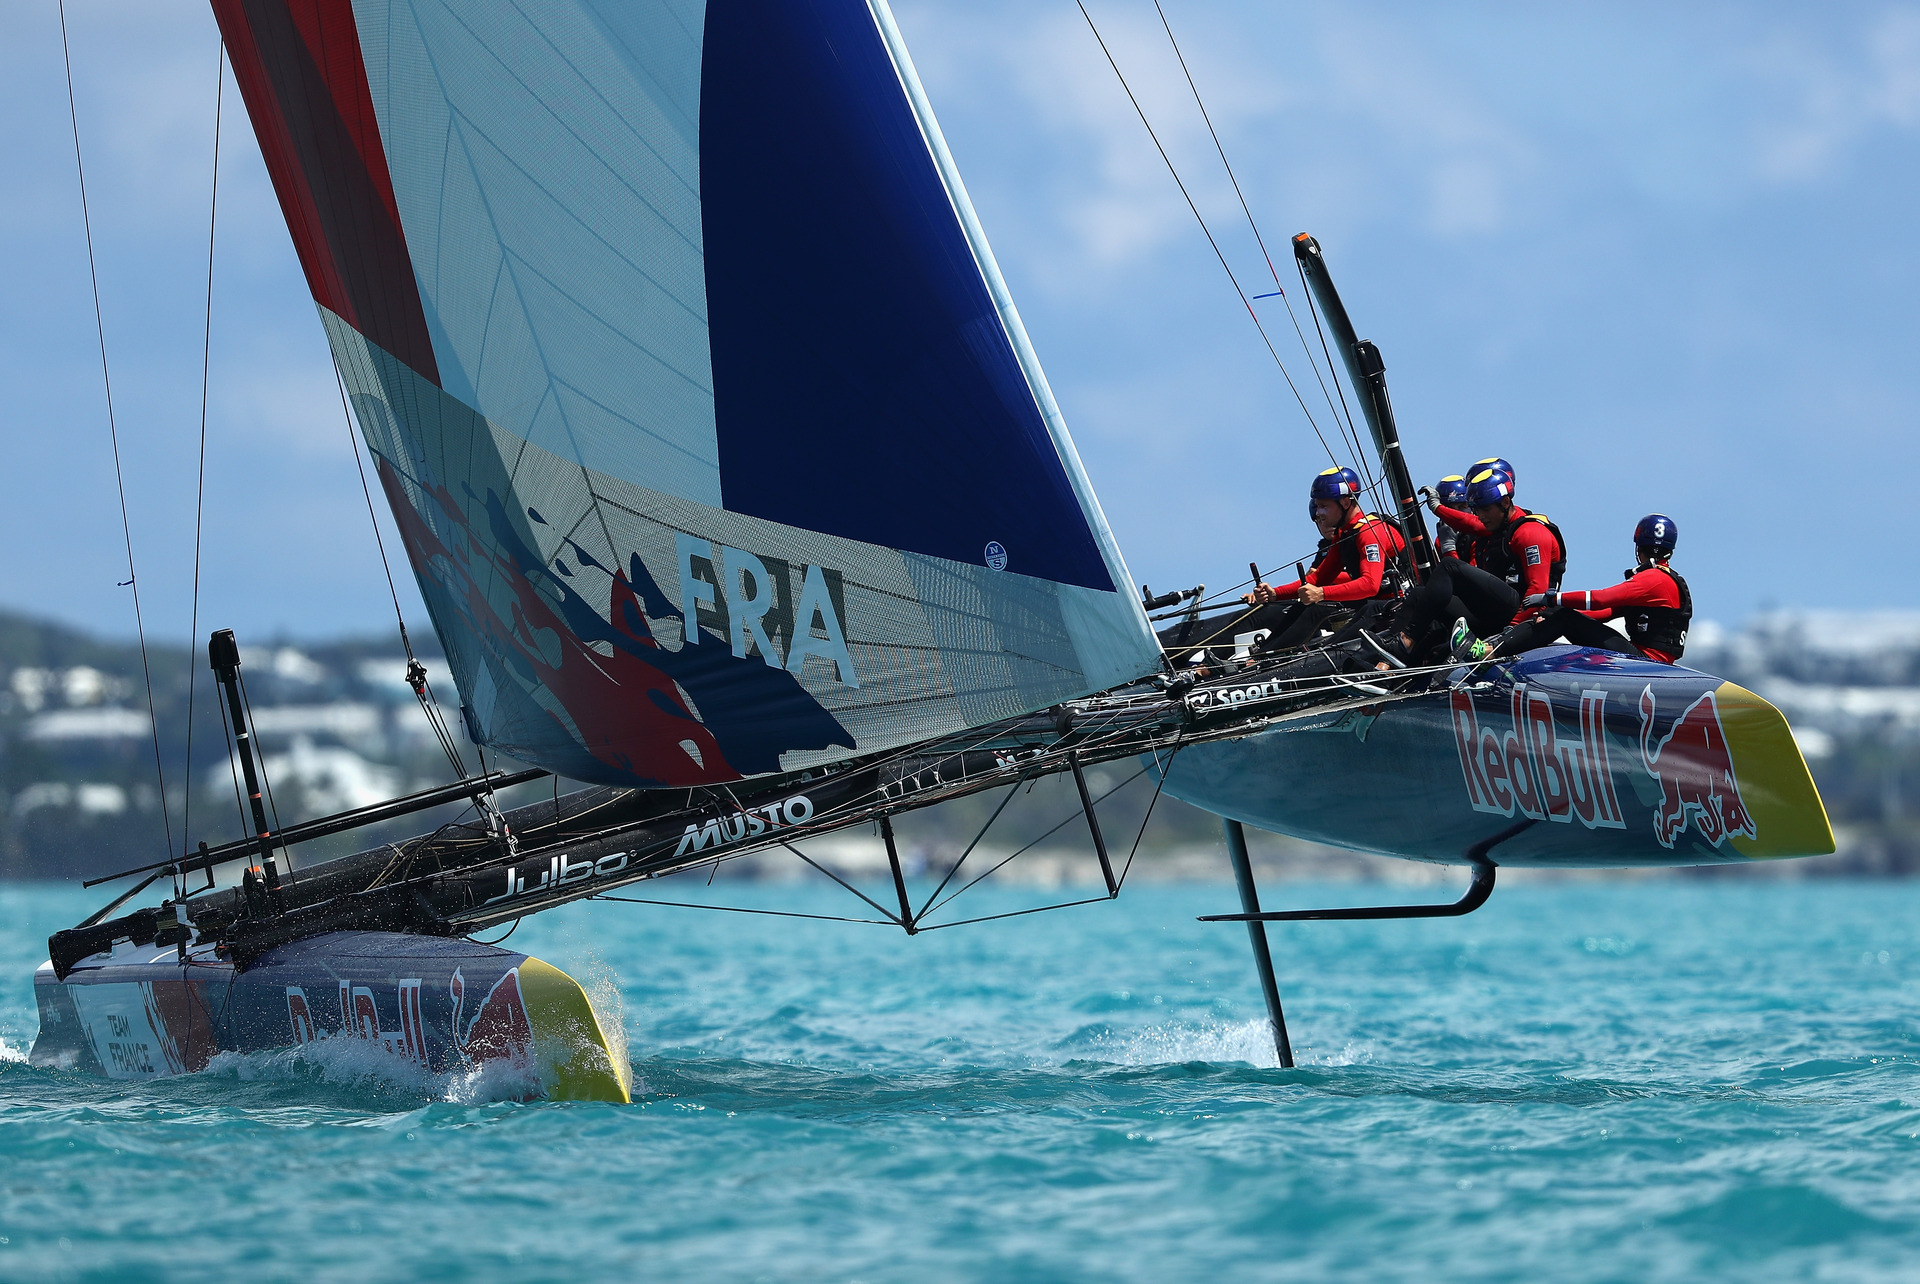 America's Cup: Team France put timeline on possible challenge for 2021 America's Cup